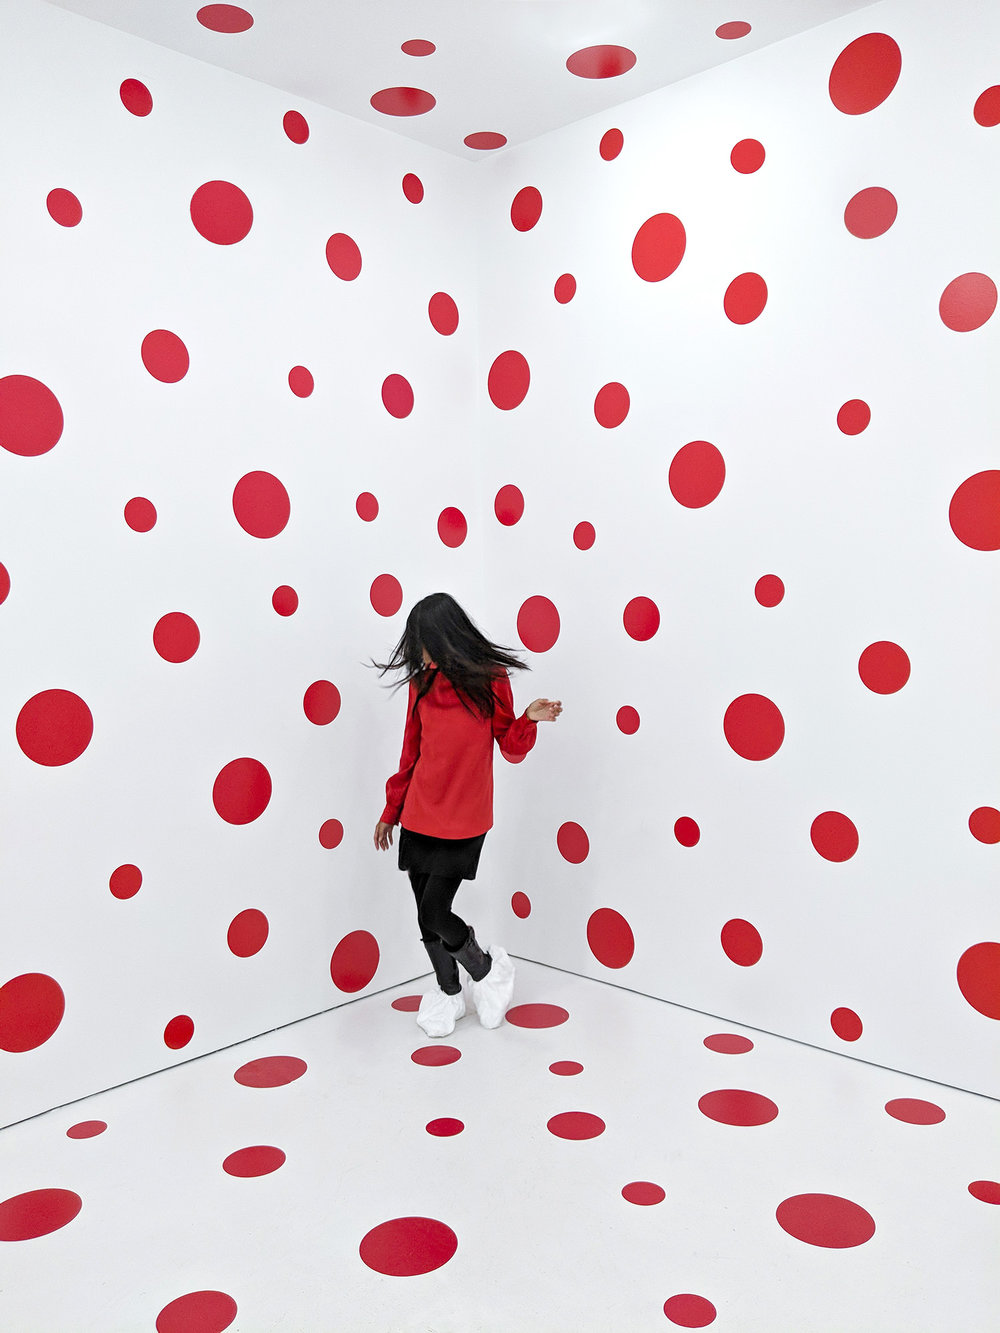 Pixel 2 and Yayoi Kusama - All photos #shotonpixel2